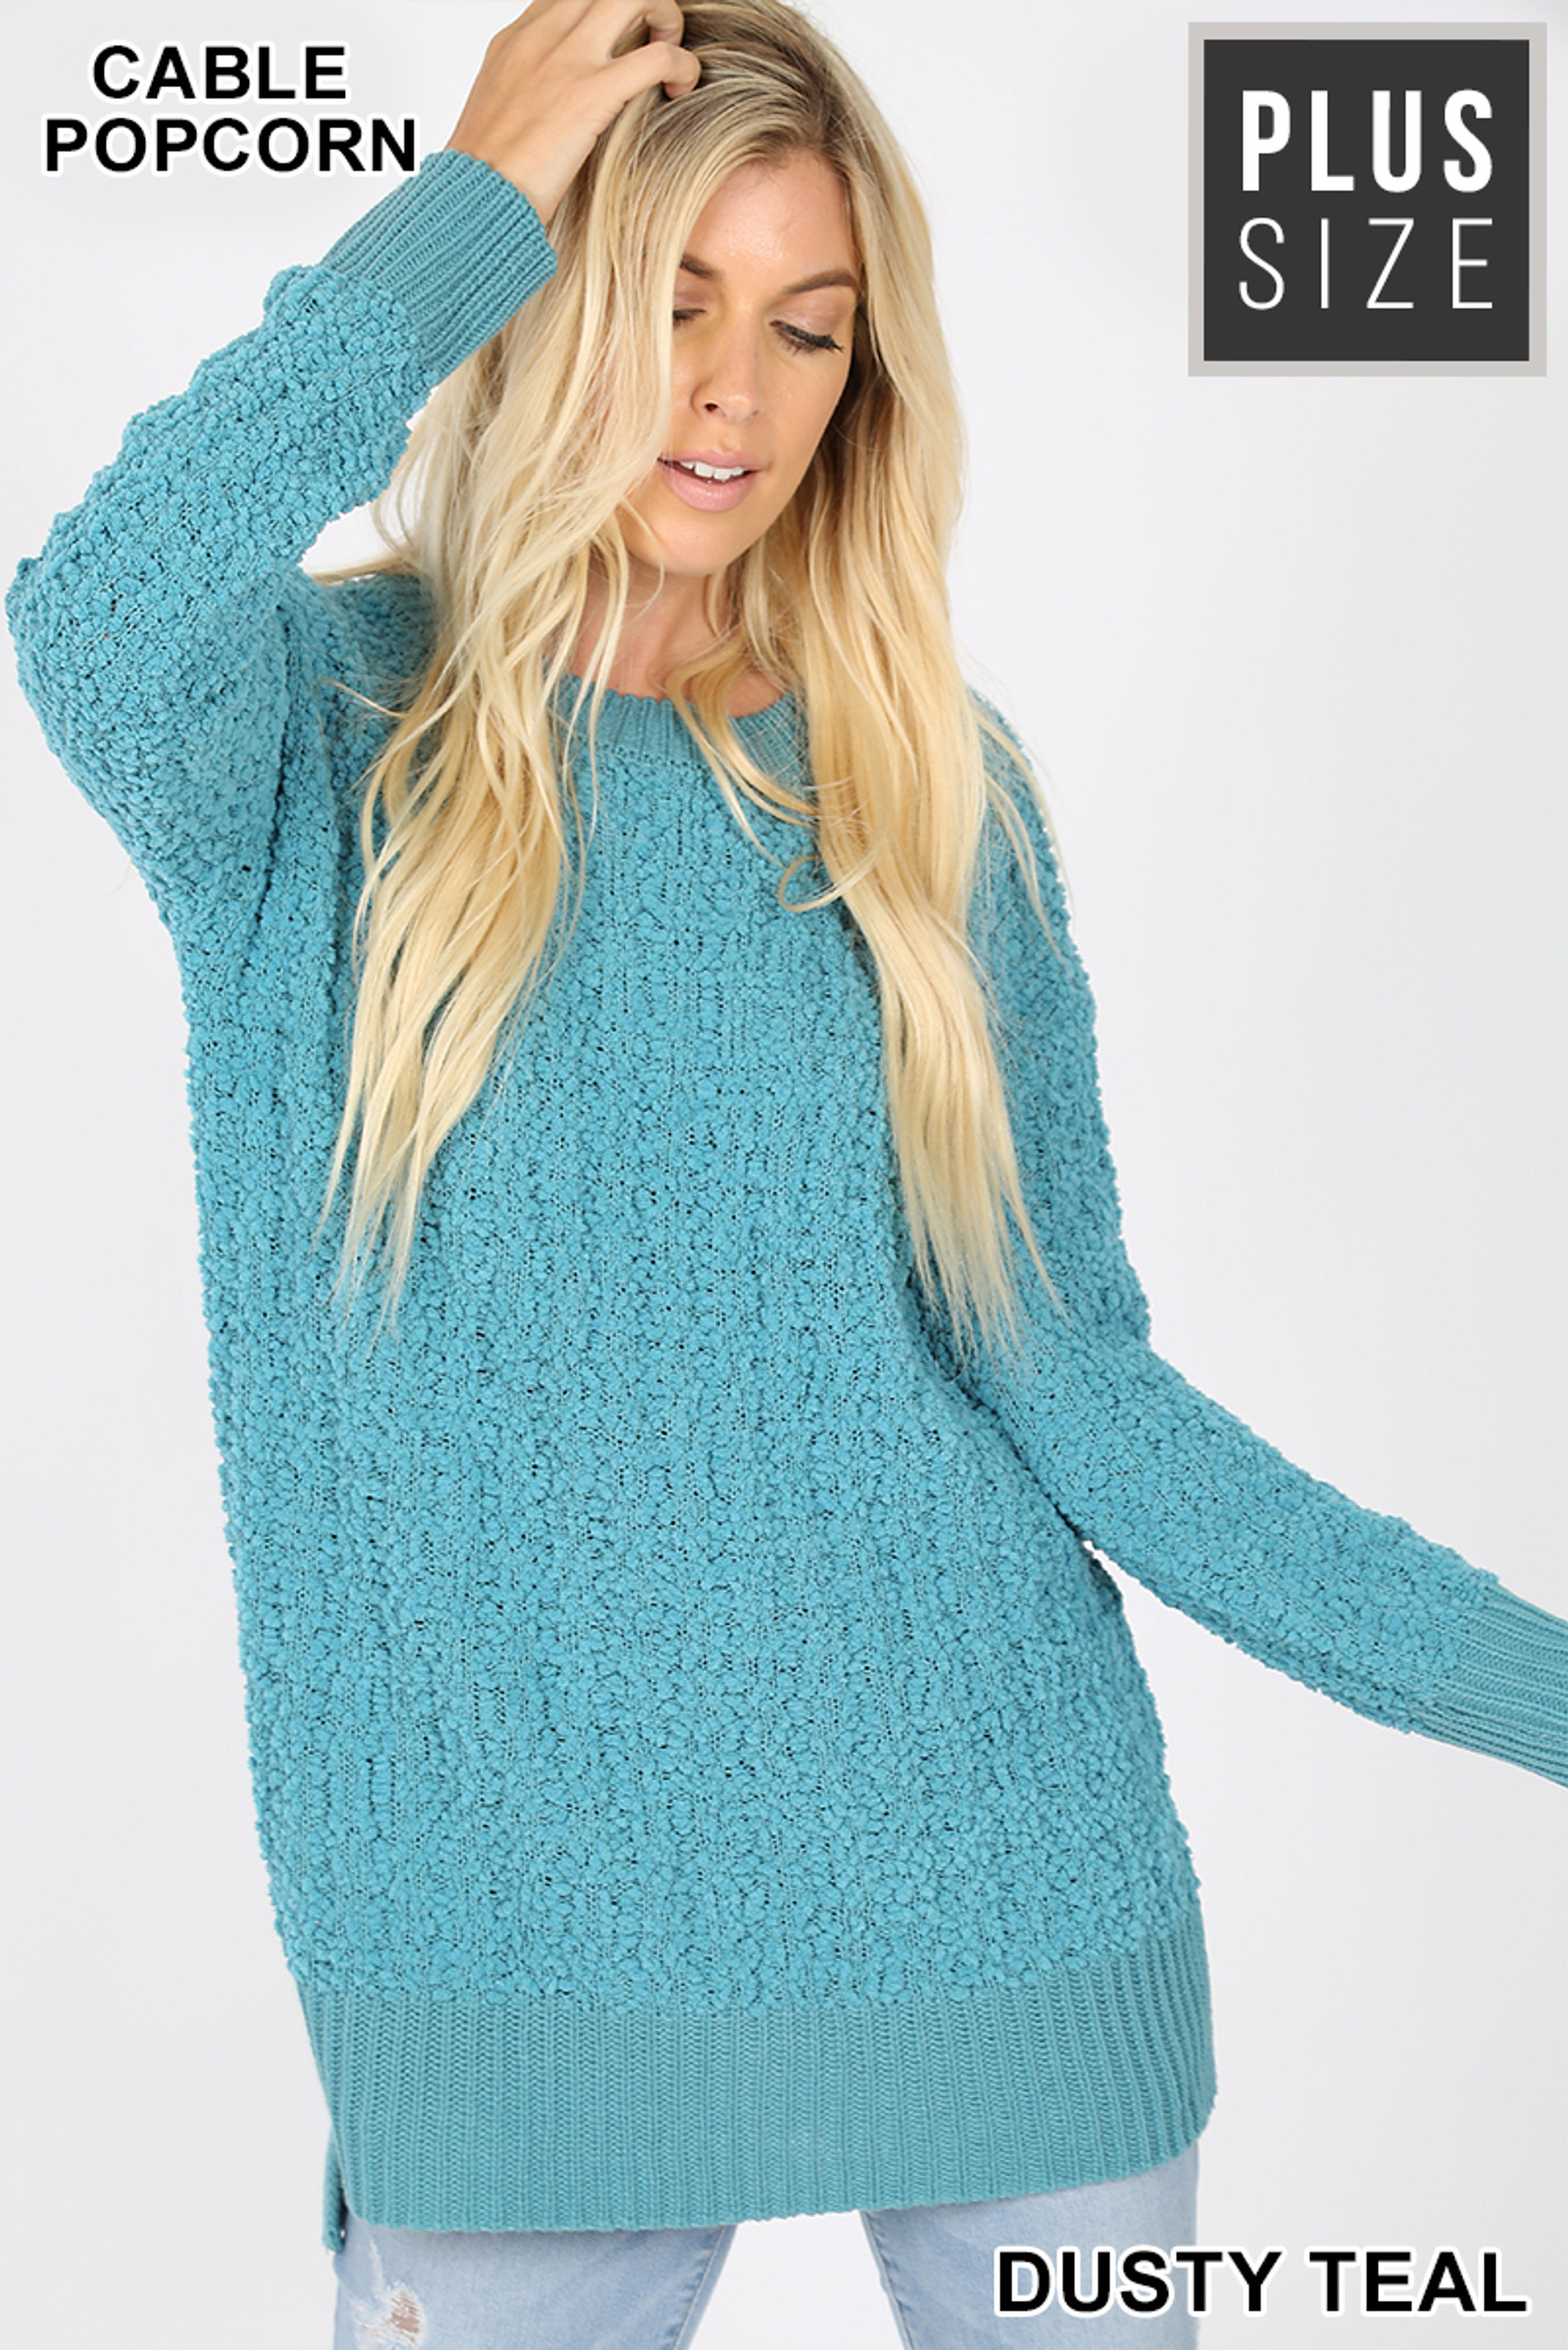 Front image of Dusty Teal Cable Knit Popcorn Round Neck Hi-Low Plus Size Sweater